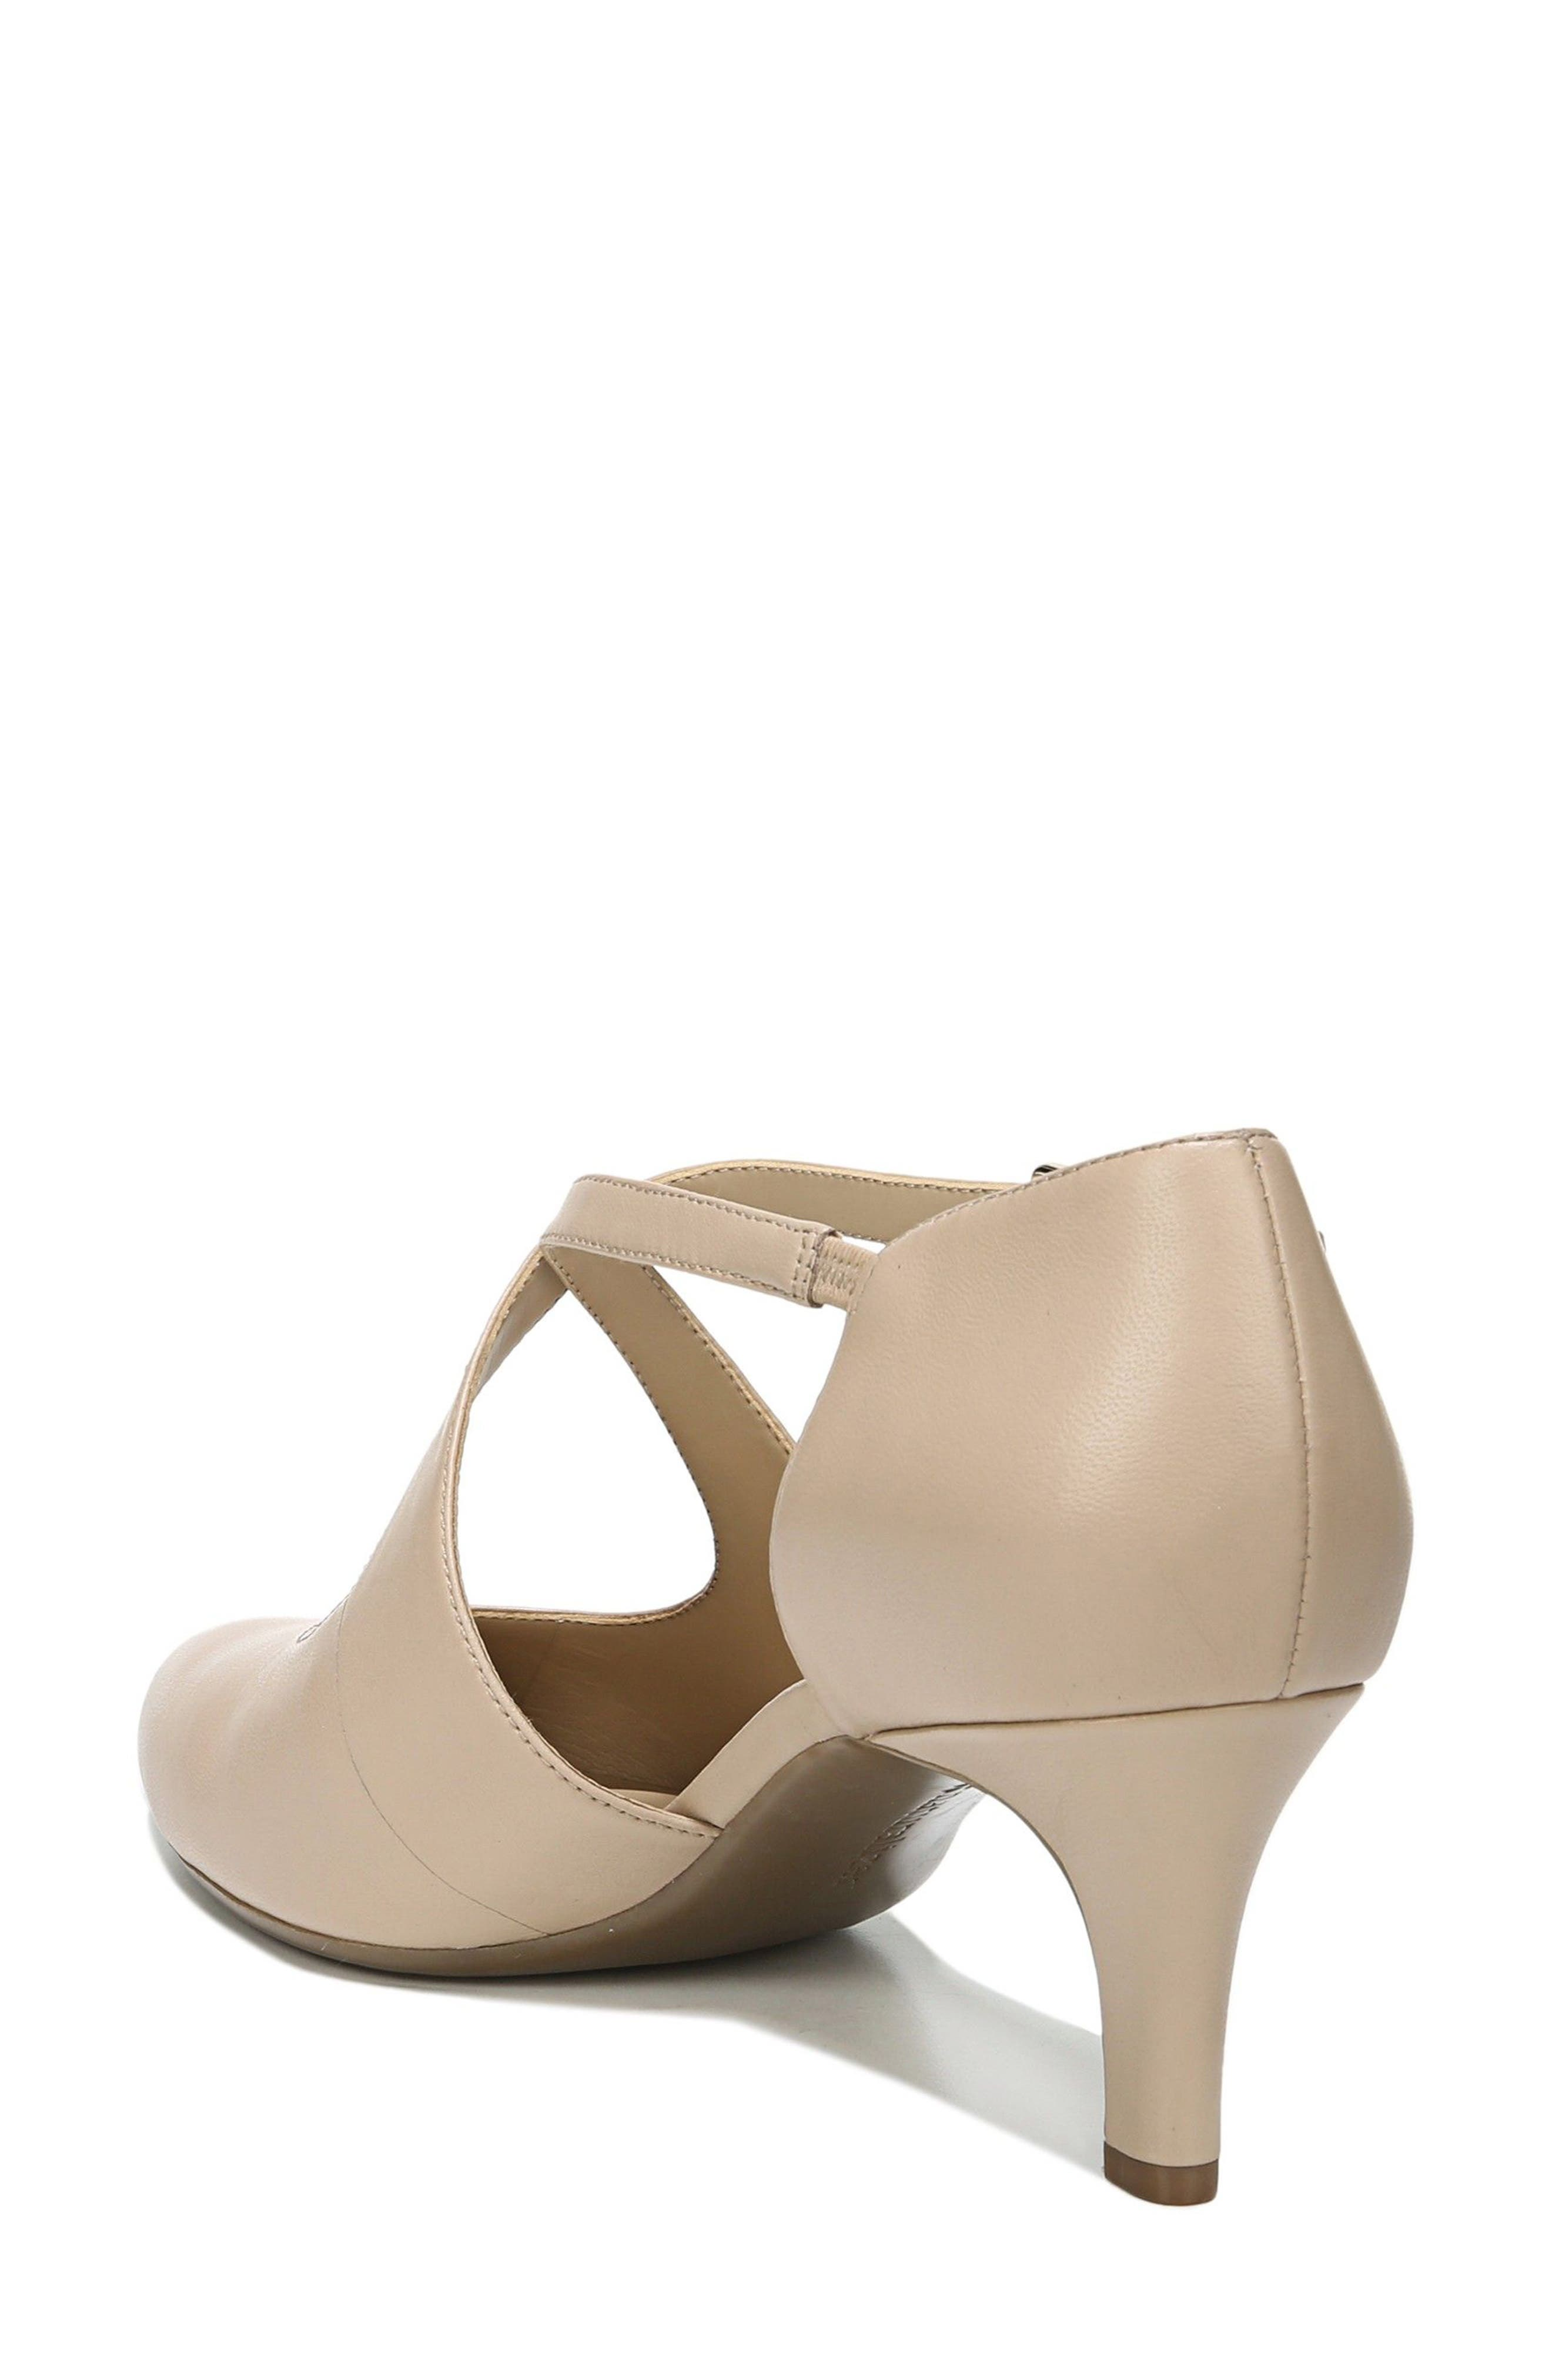 NATURALIZER, Okira Crisscross Pump, Alternate thumbnail 2, color, TAUPE LEATHER